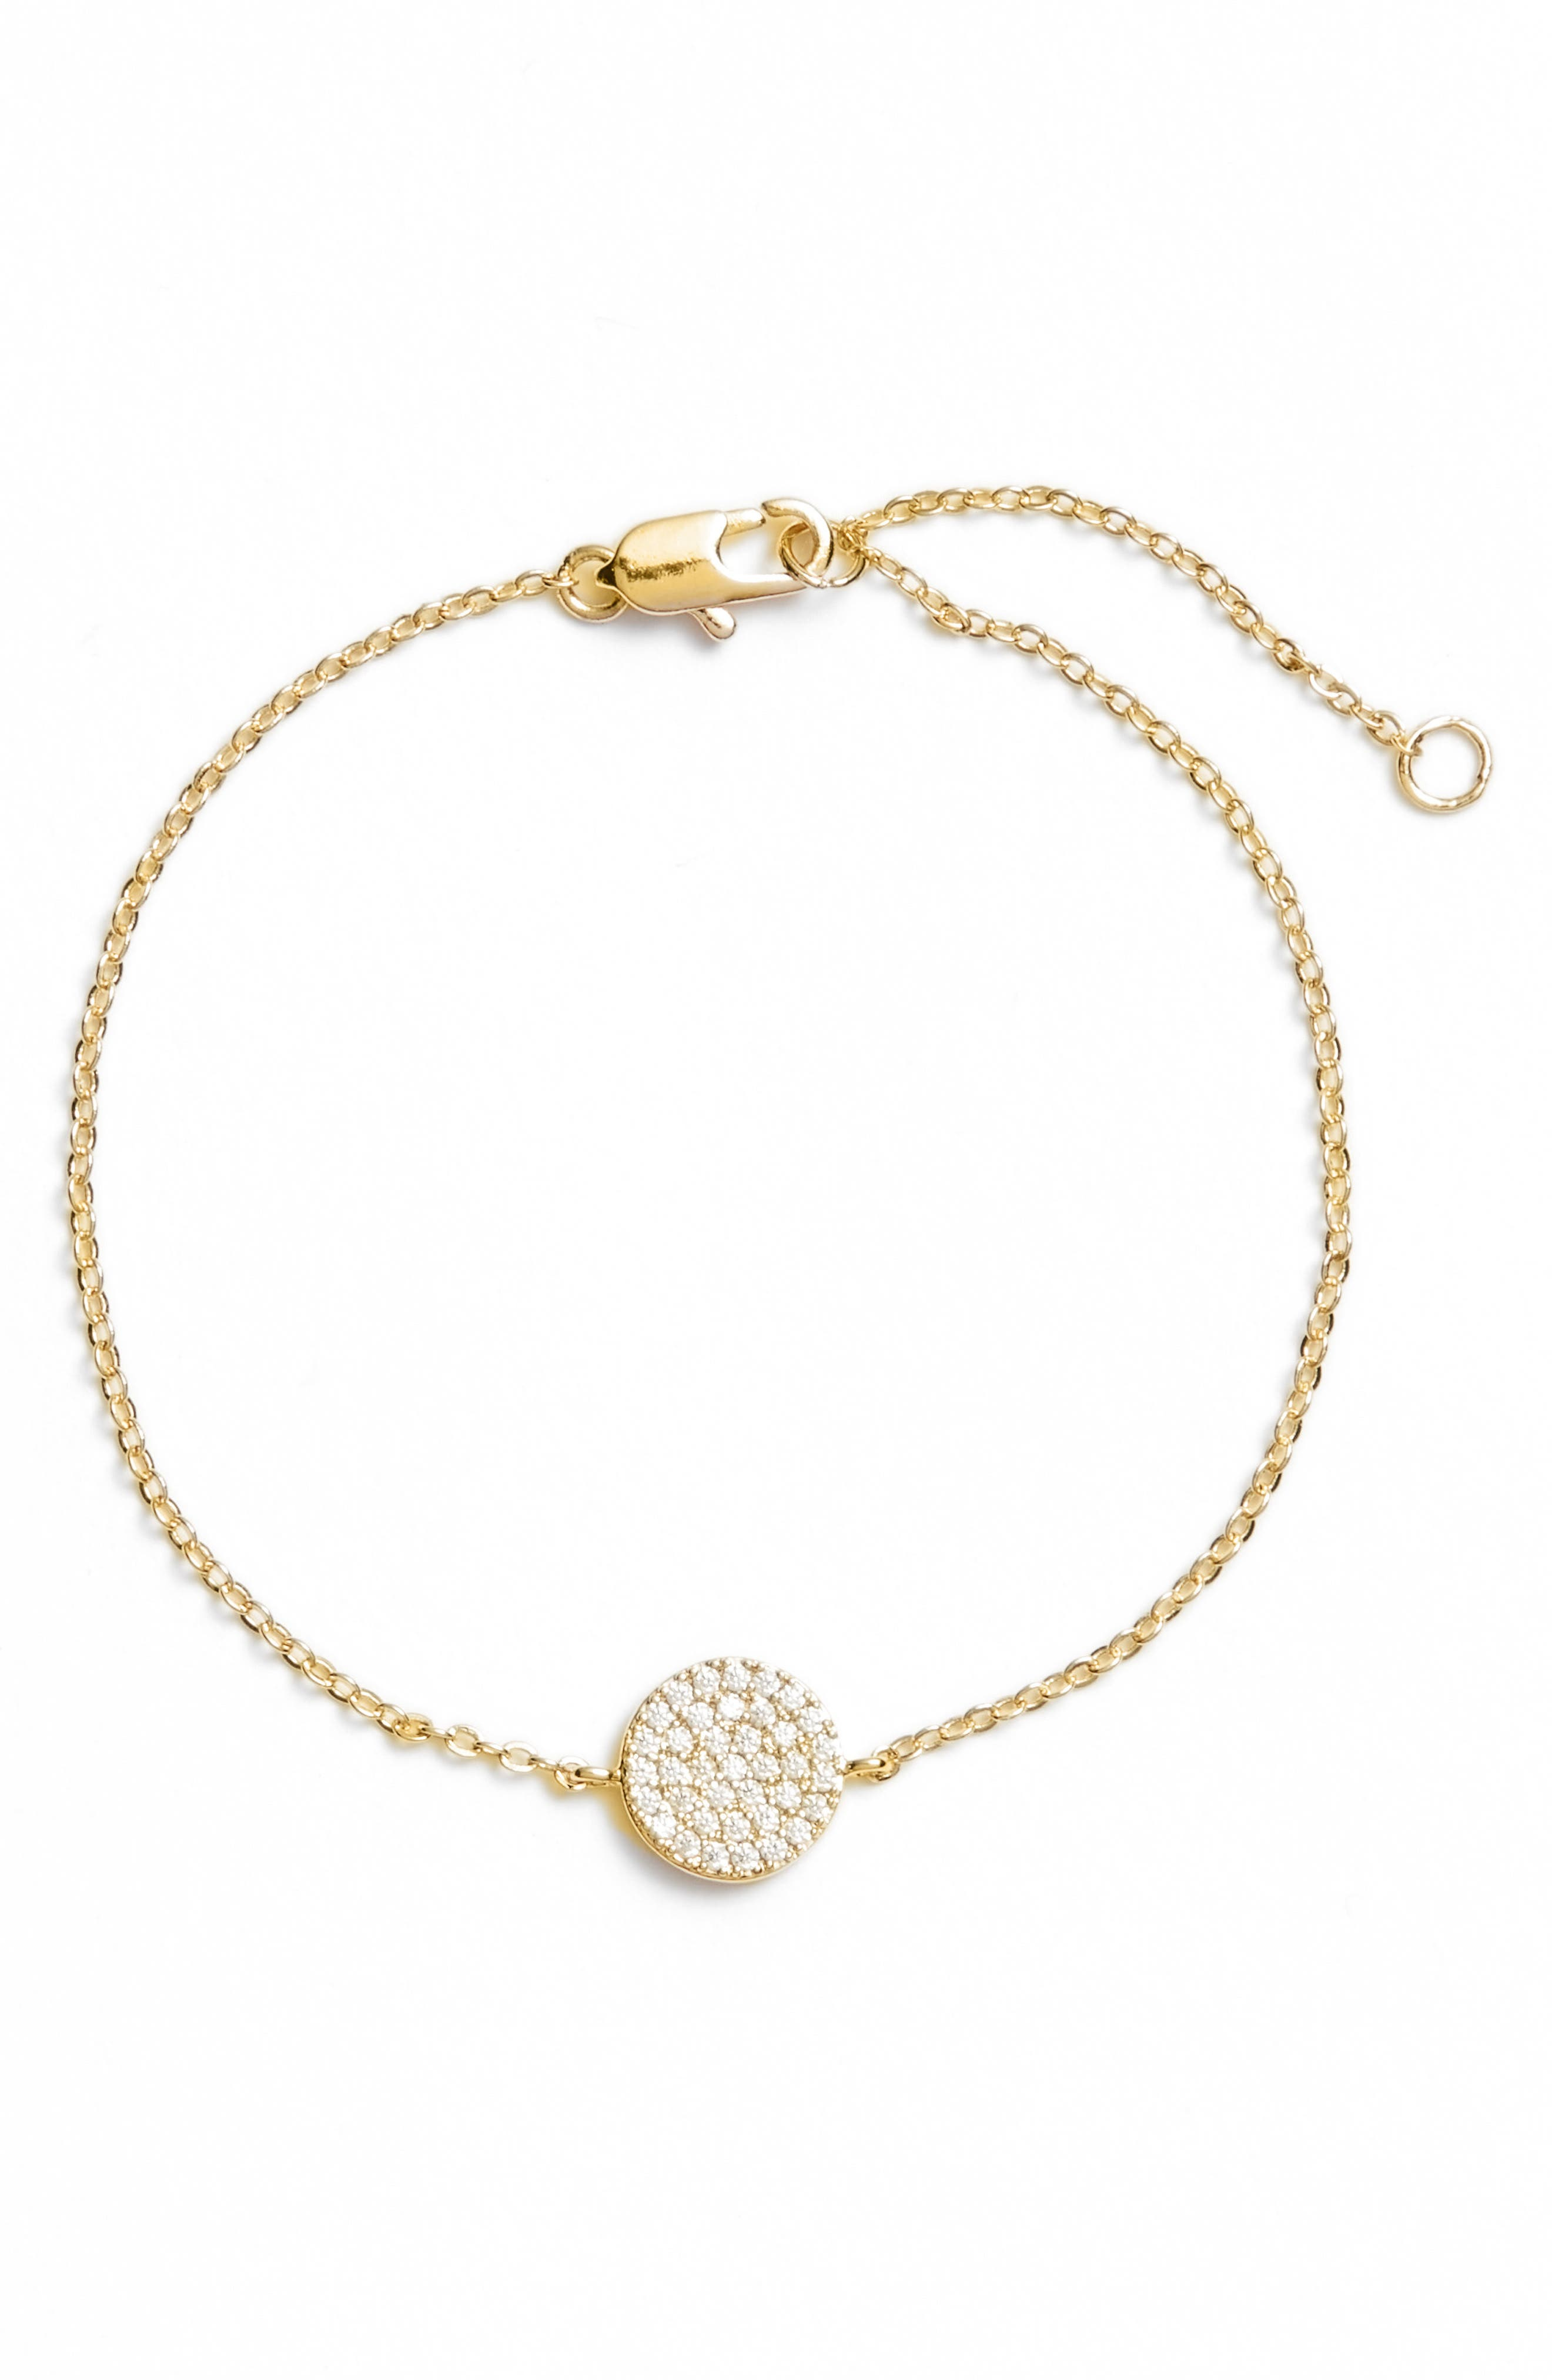 Silver Plated Solid Band Ankle Bracelet Jewellery & Watches Smart Ladies Gold Anklets